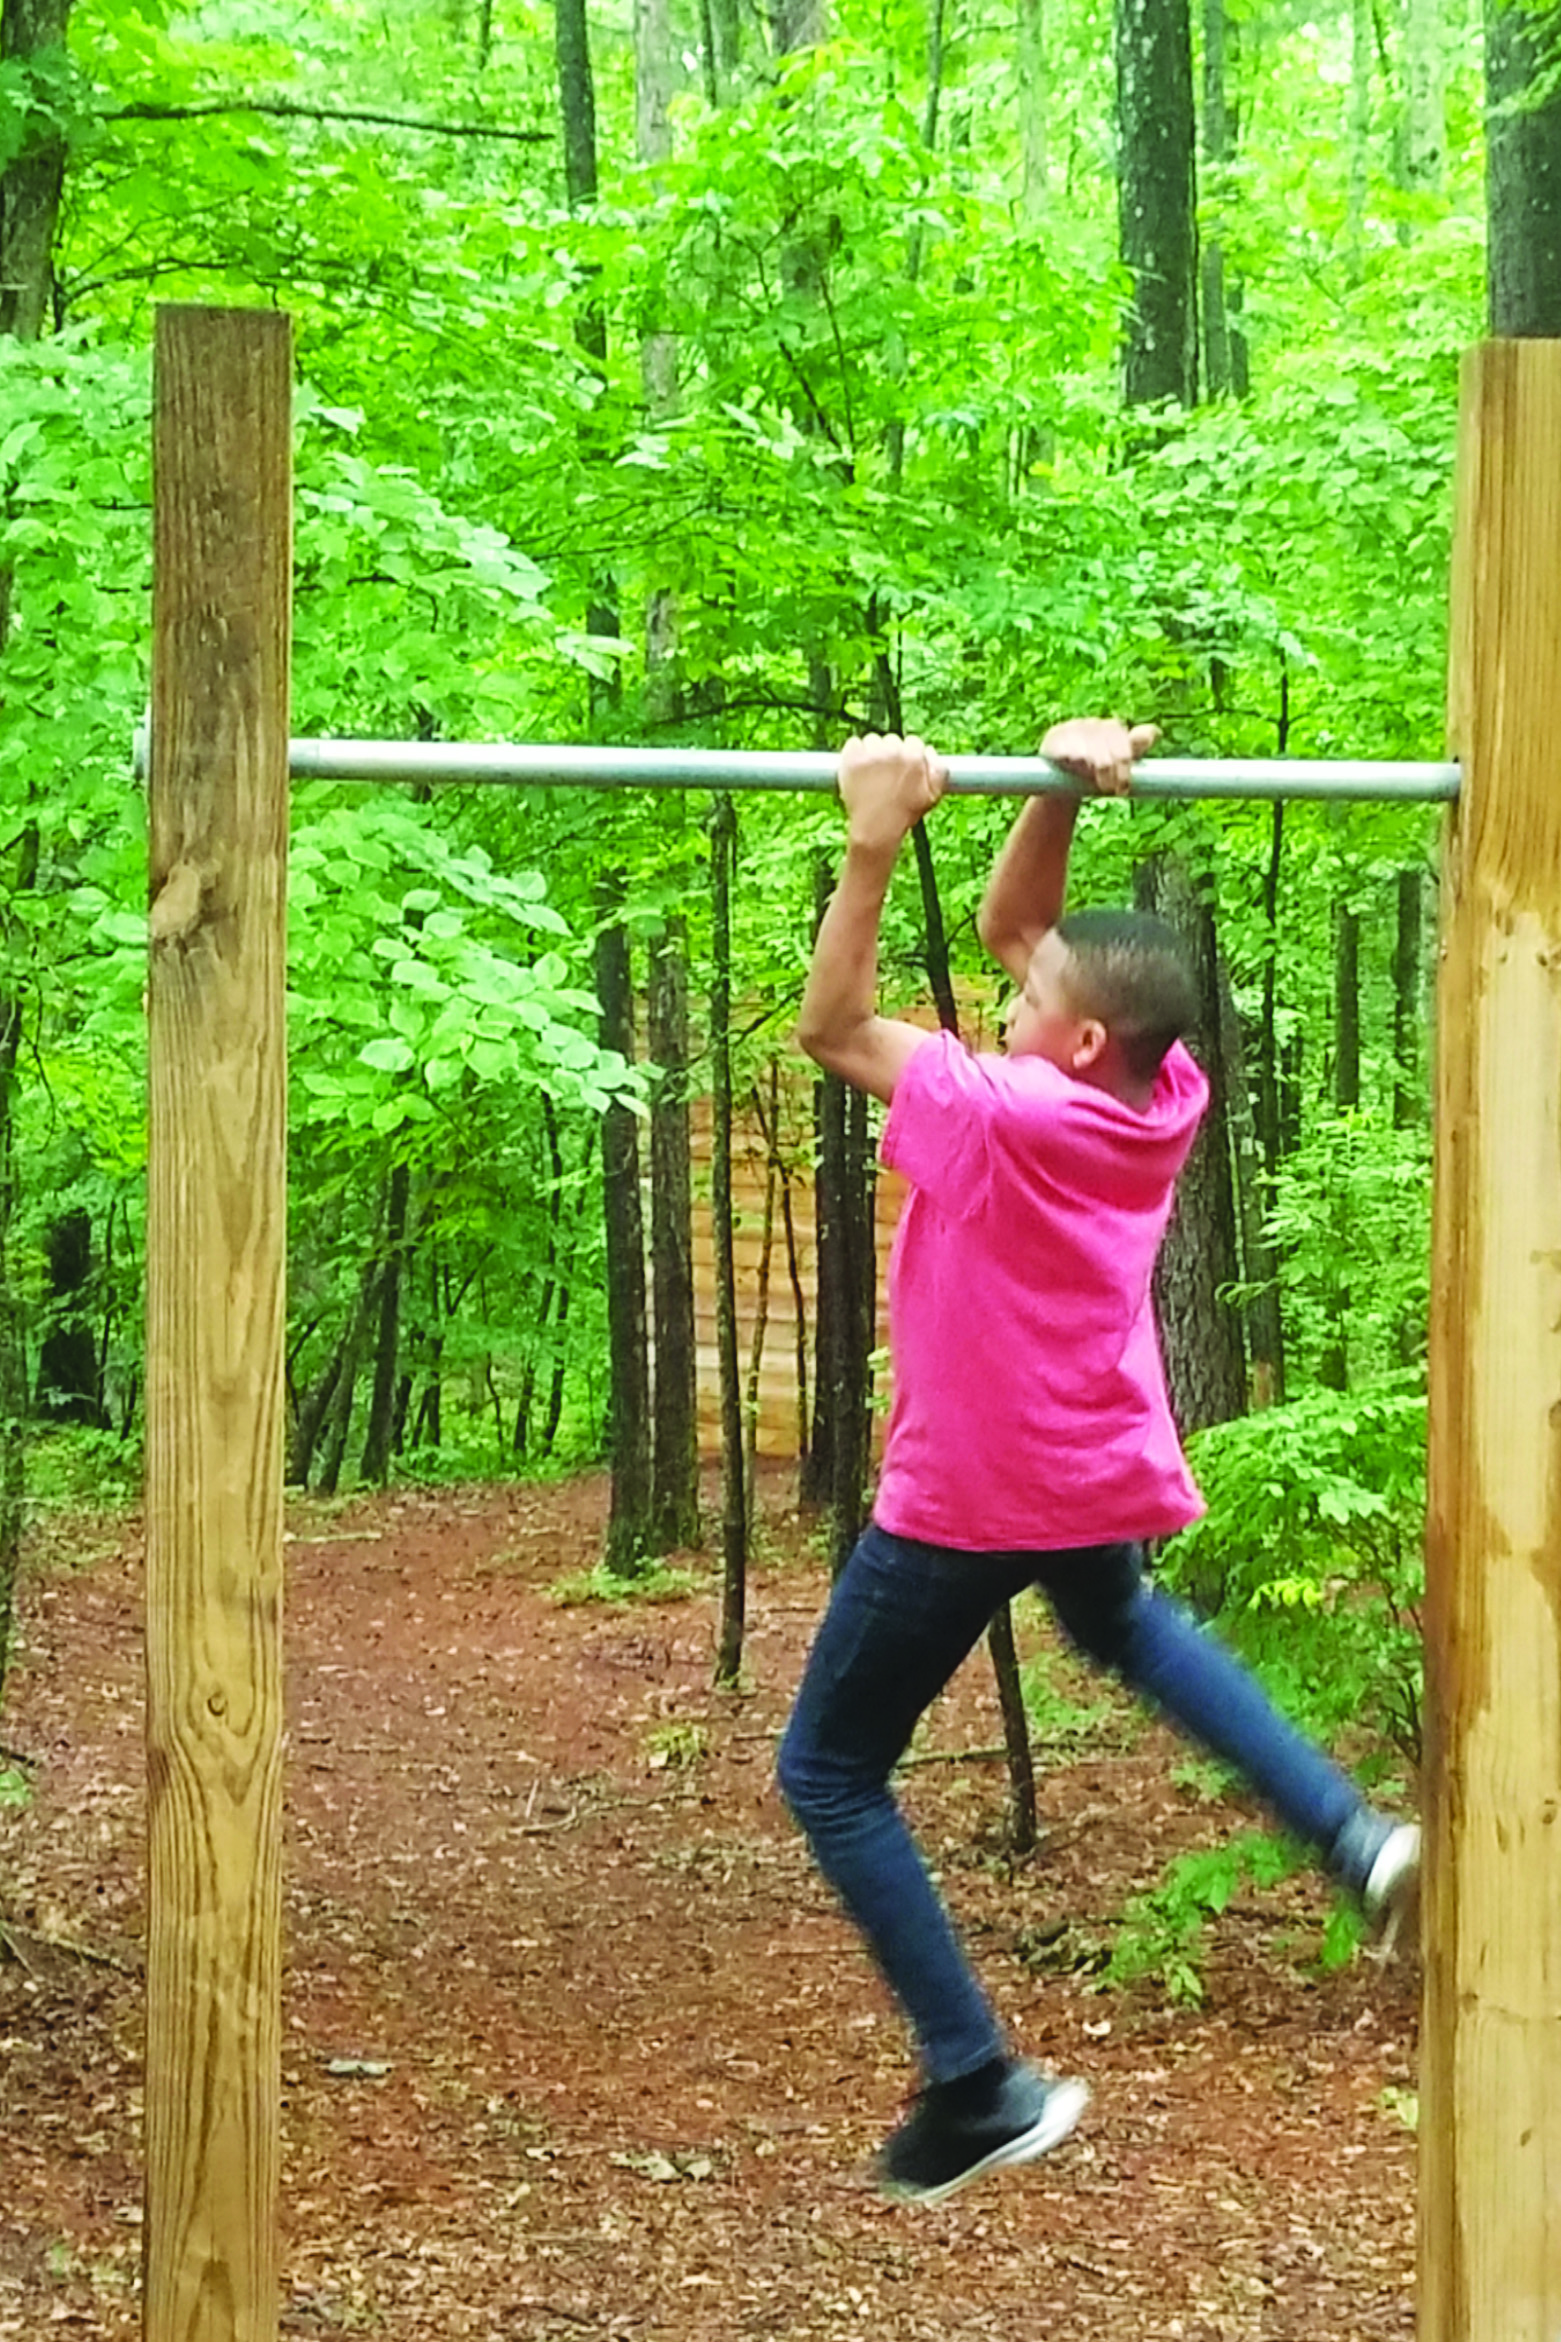 Bo Ogunmuko, a Creekview High School rising freshman, learns about Junior ROTC by trying out its obstacle course during the 'summer bridge' program.